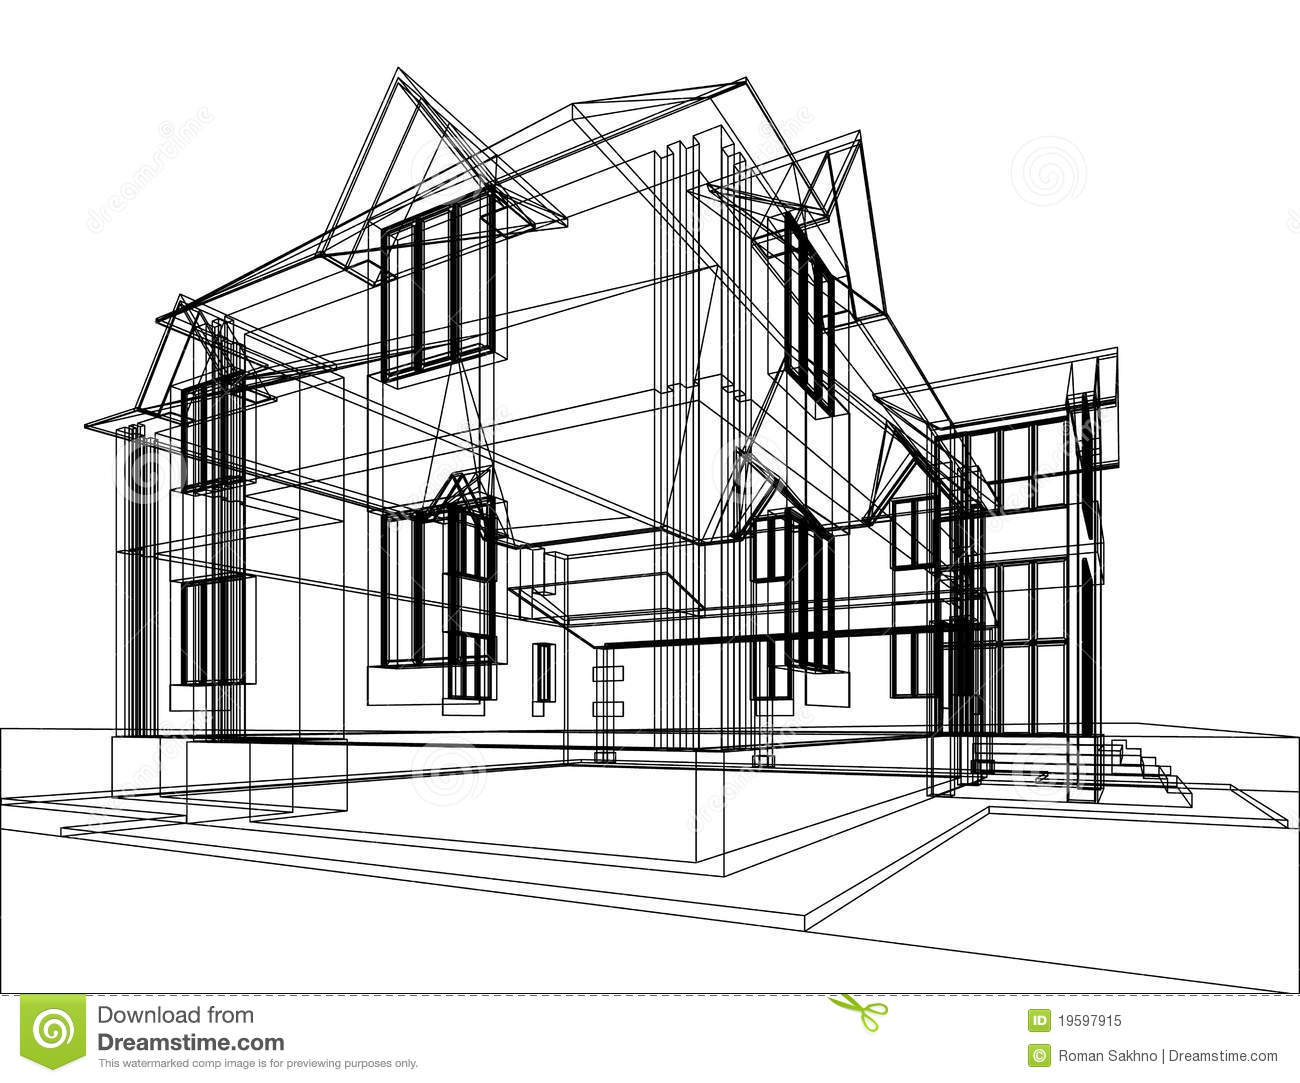 Building, Architecture, Architectural Designer, Architectural Drawing,  Interior Design Services, 3D Computer Graphics, House, 3D Modeling  transparent background PNG clipart   HiClipart